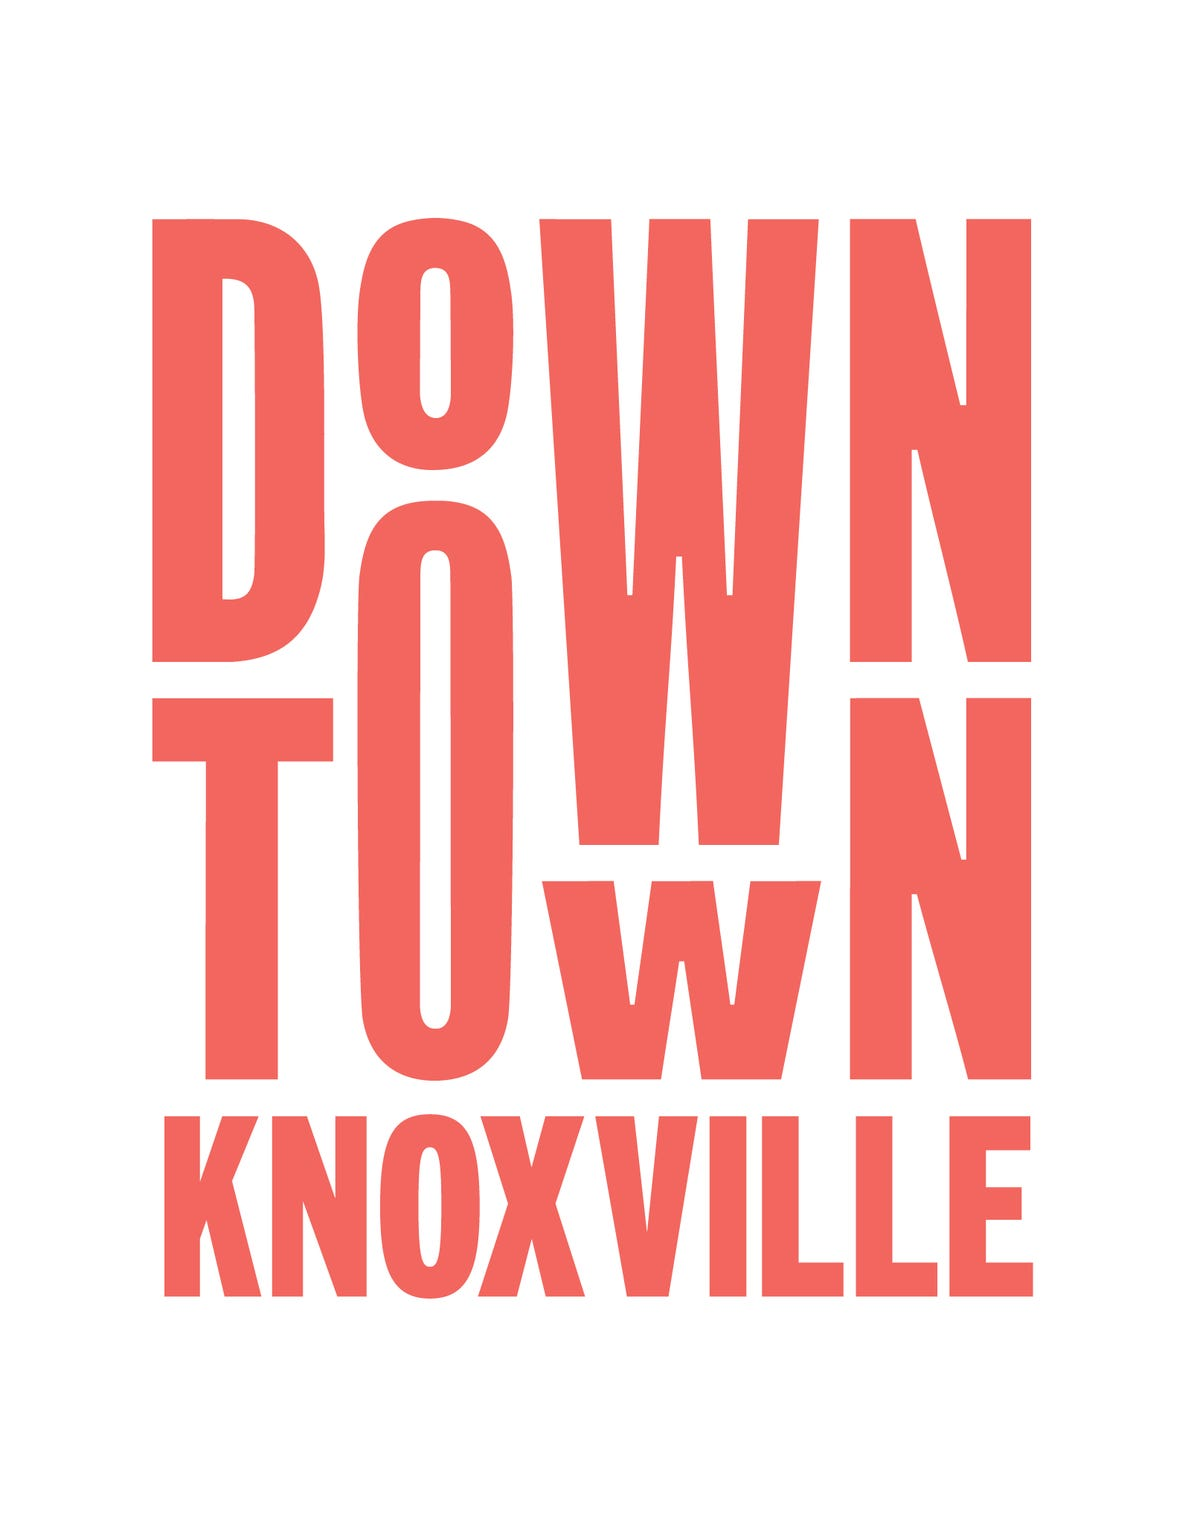 cc37bc3a Downtown Knoxville drops new logo, retail, restaurant alliance rebrands